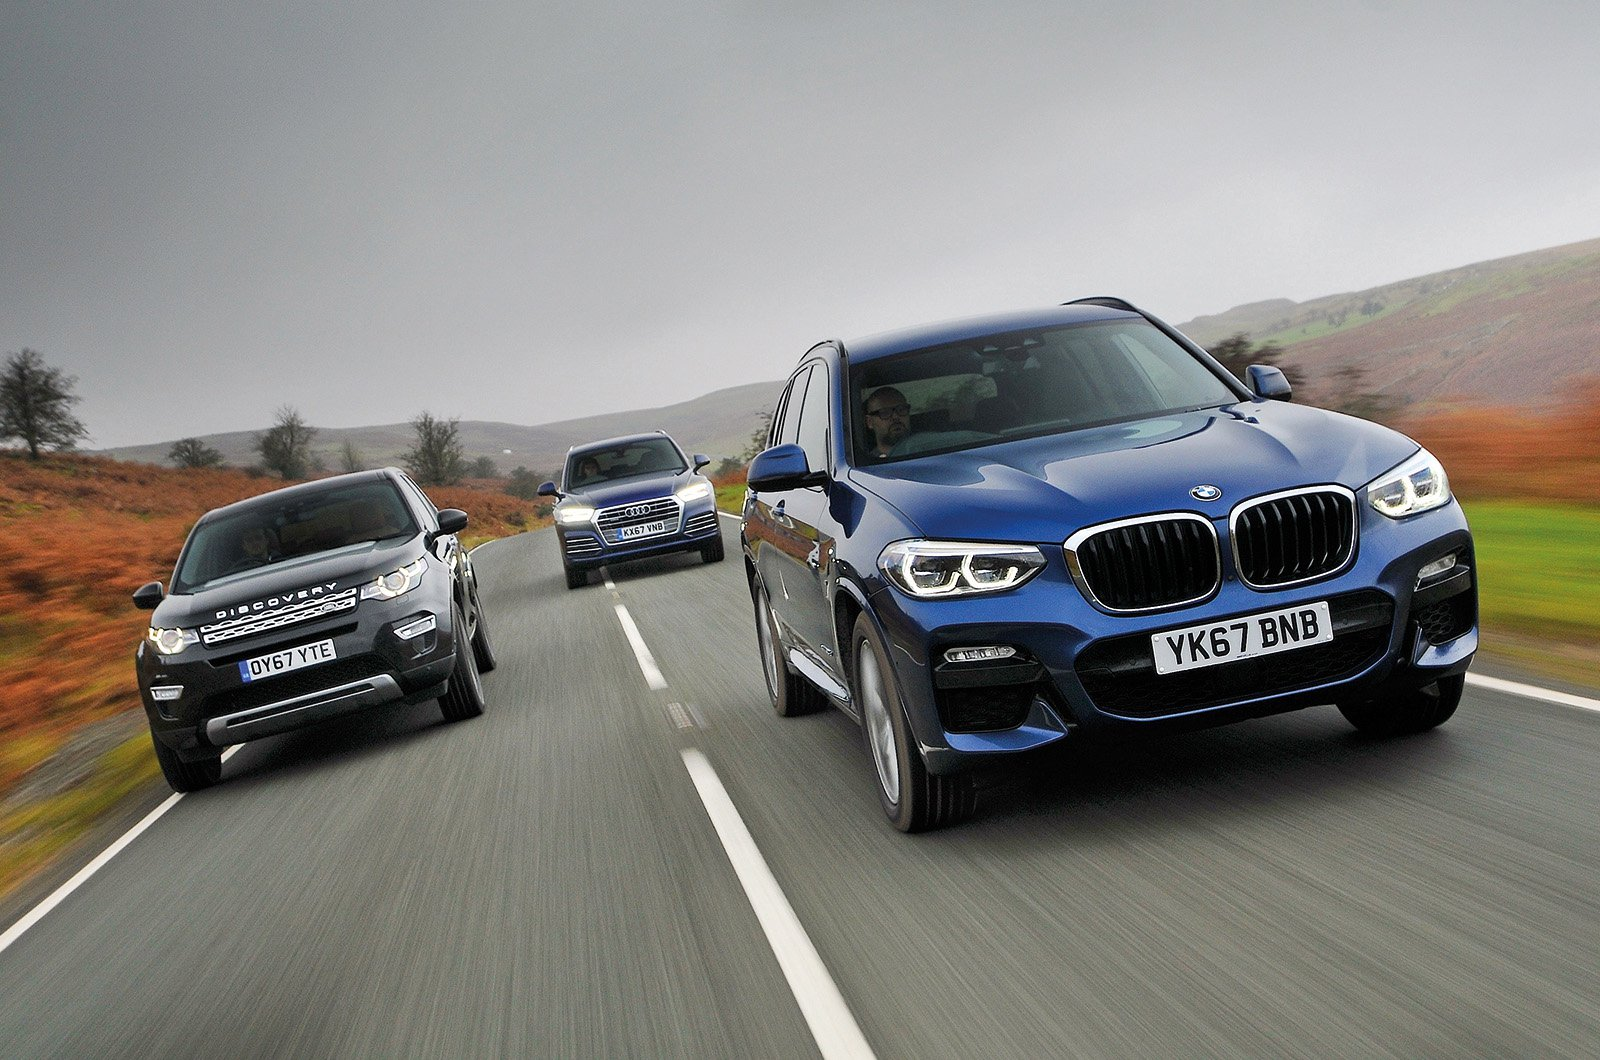 Used test: Audi Q5 vs BMW X3 vs Land Rover Discovery Sport